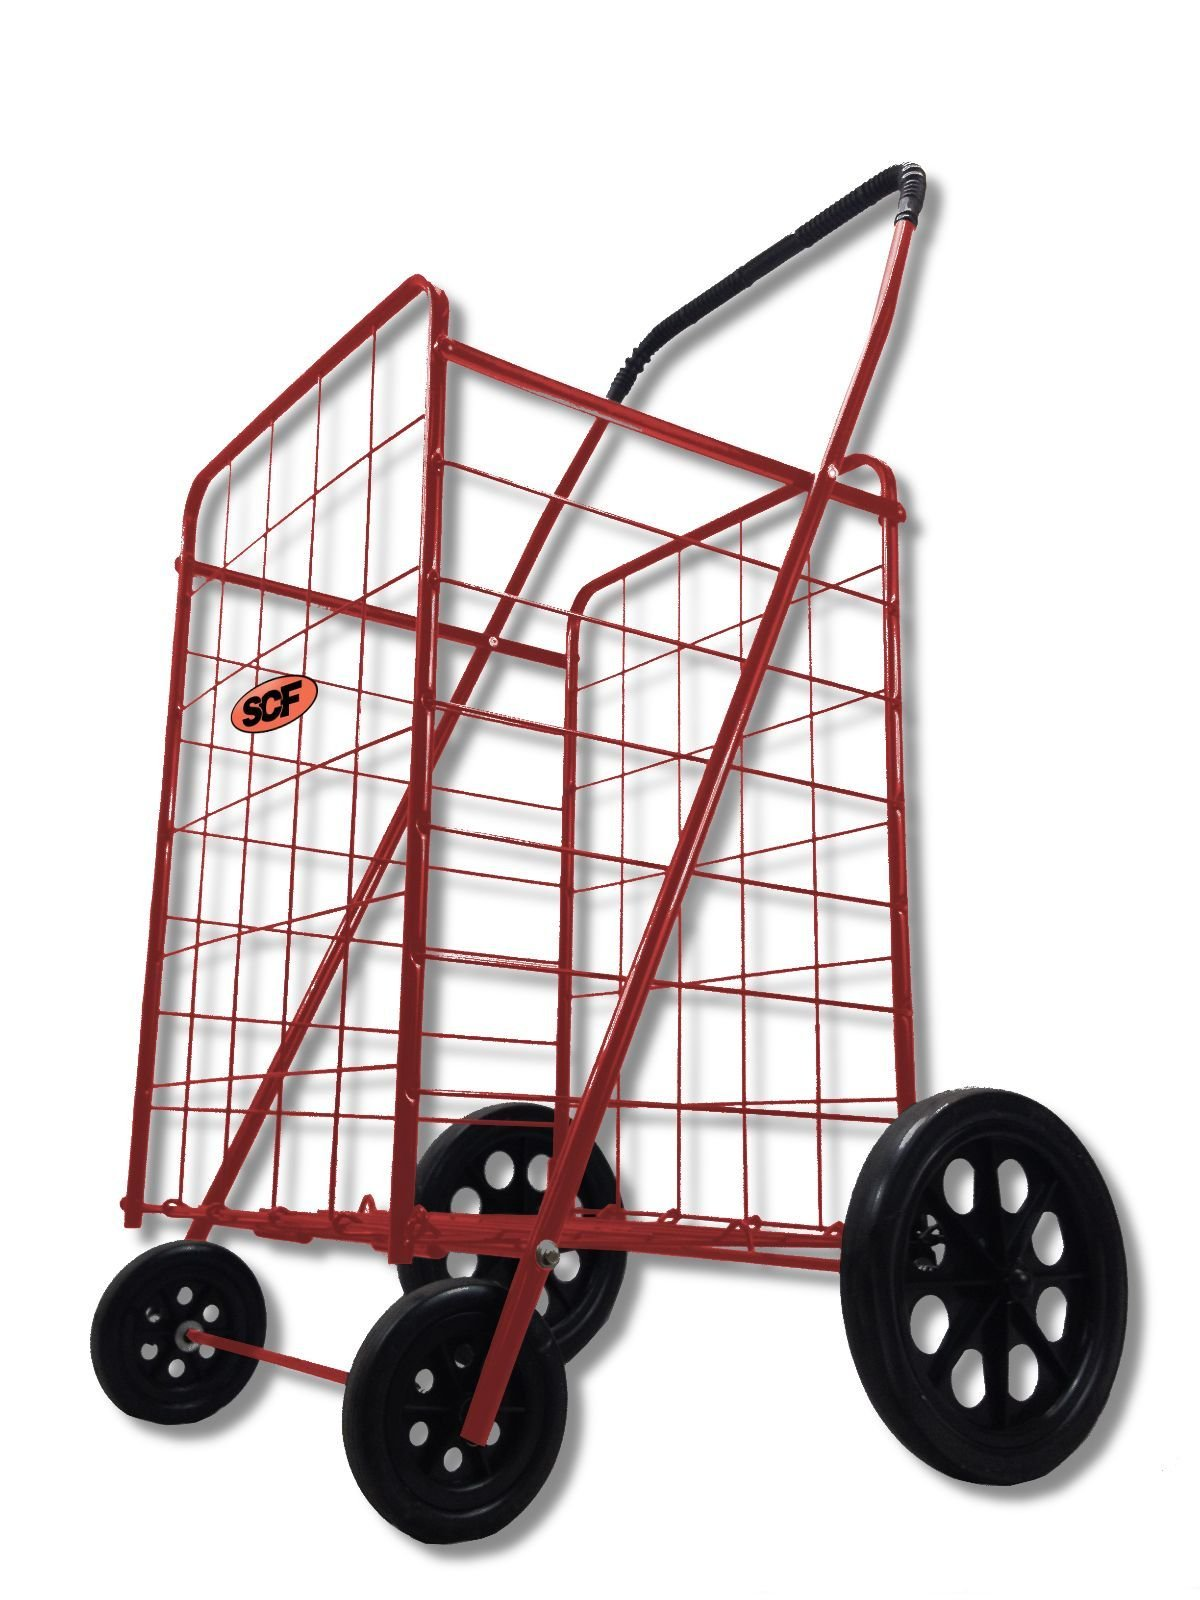 Extra Large Folding Shopping Cart Basket 4 Wheel Jumbo WITH FREE LINER AND CARGO NET by SCF (Red with Blue liner)